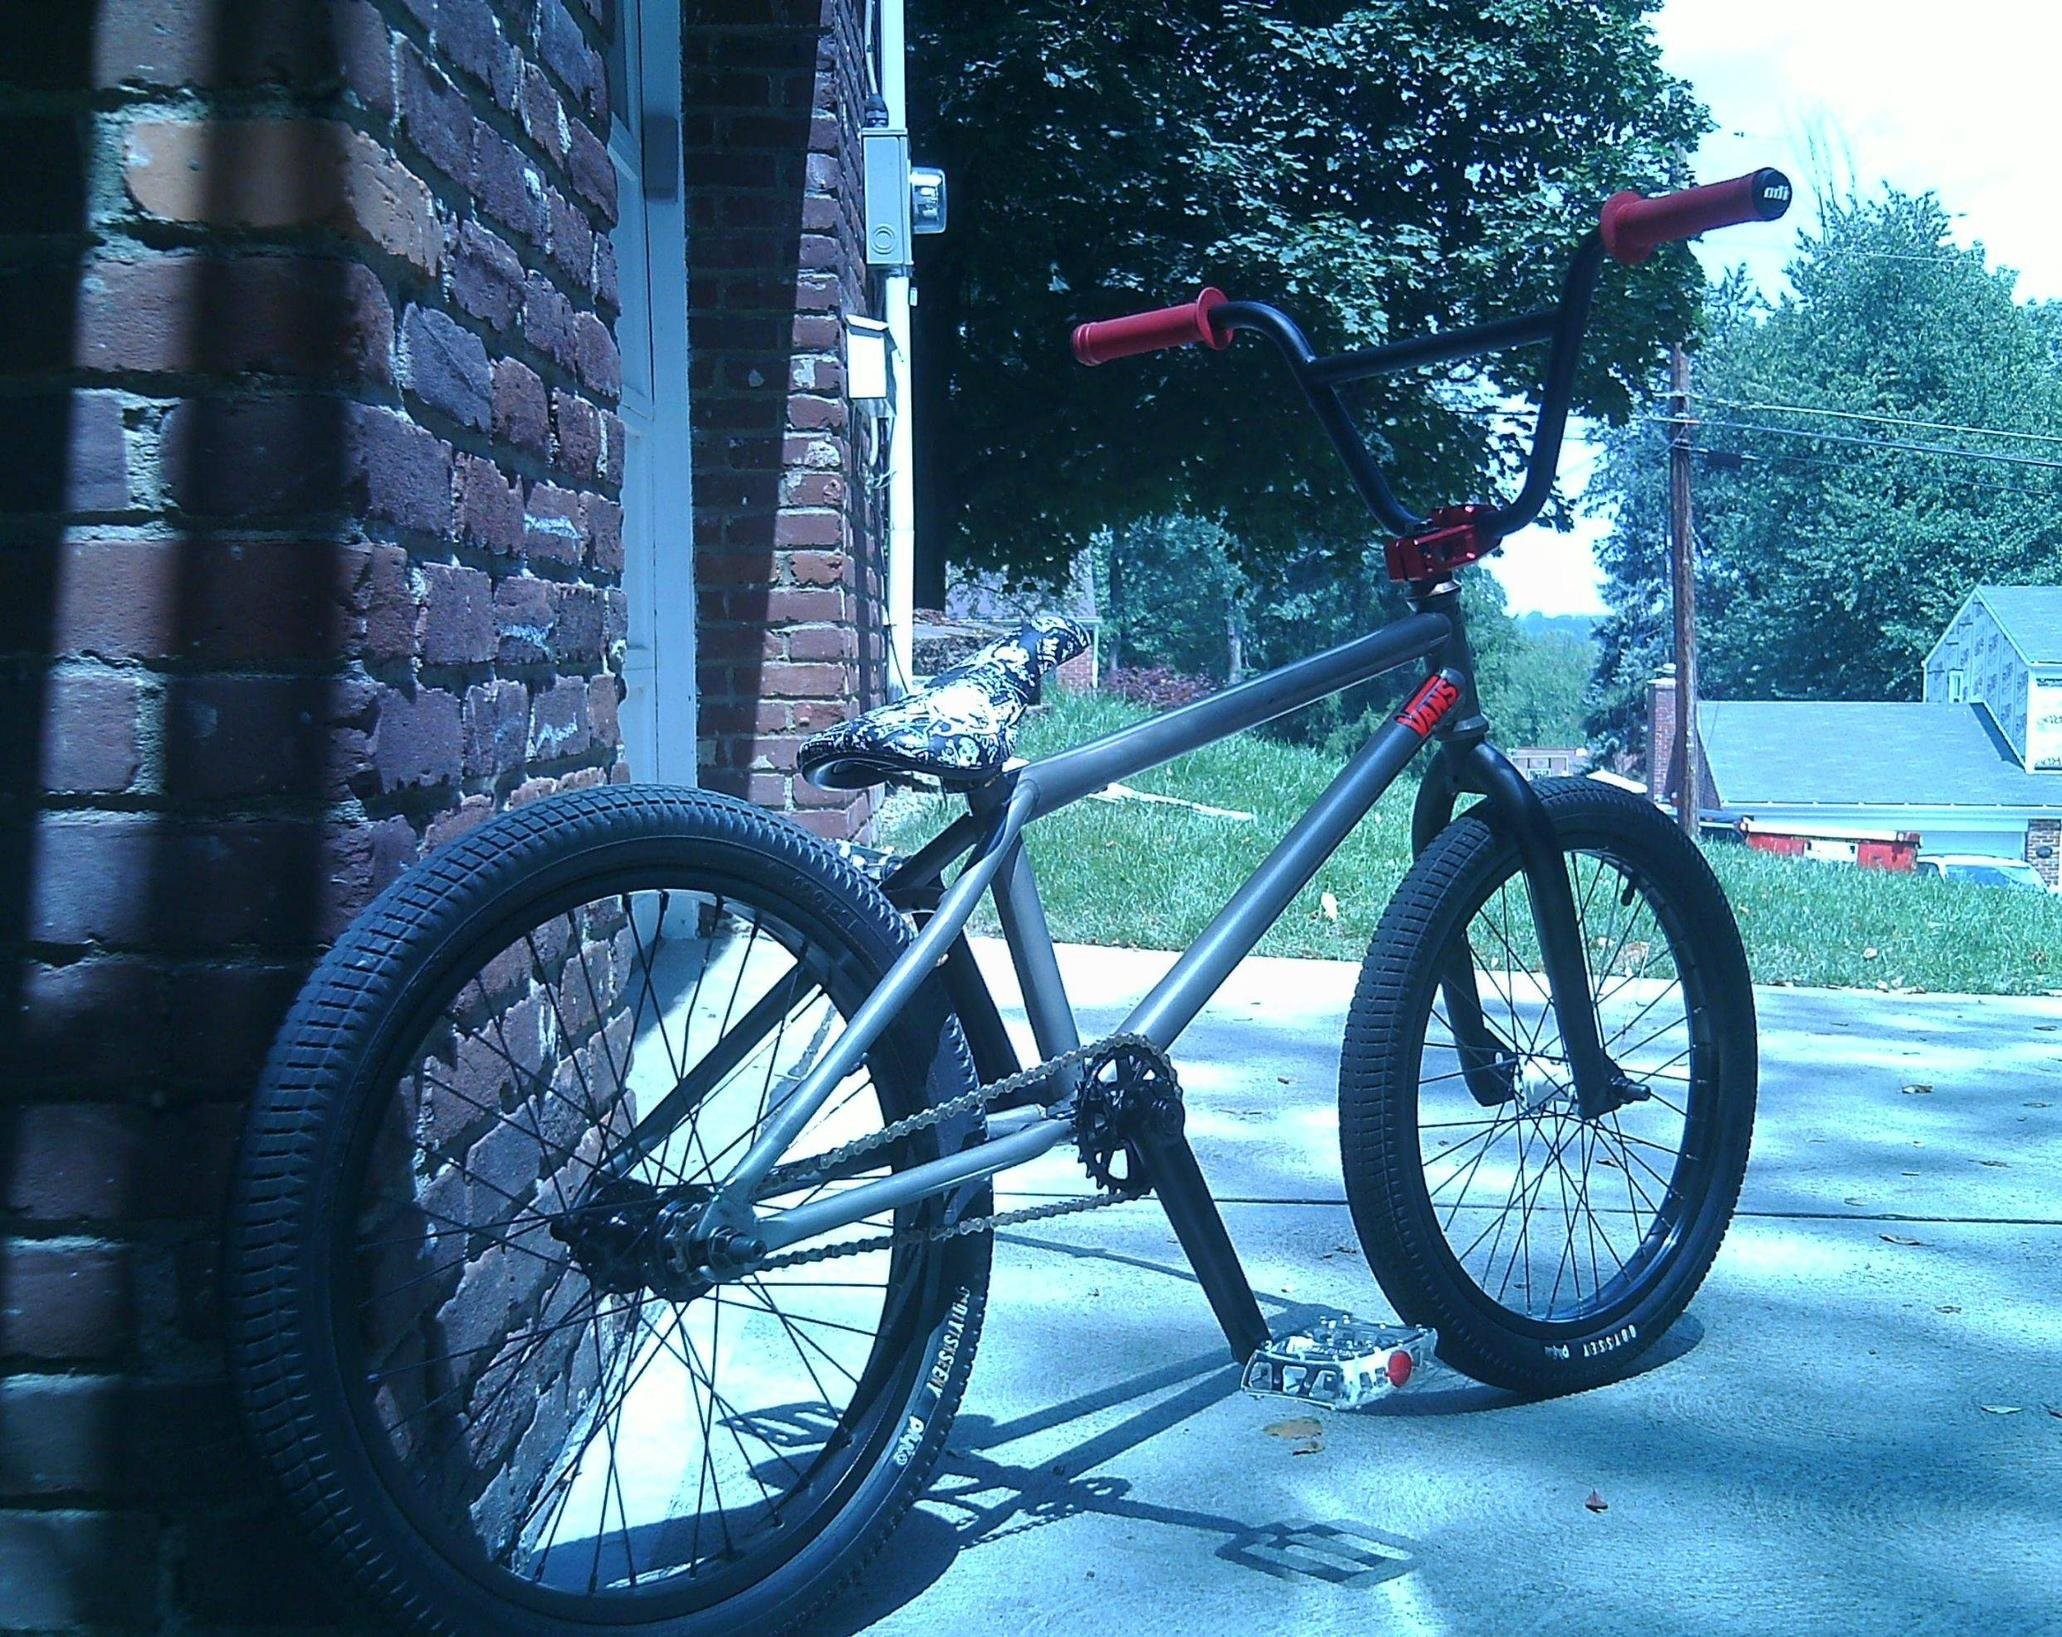 Download Bmx Bike Wallpapers Gallery: Cool Bmx Wallpapers (65+ Images